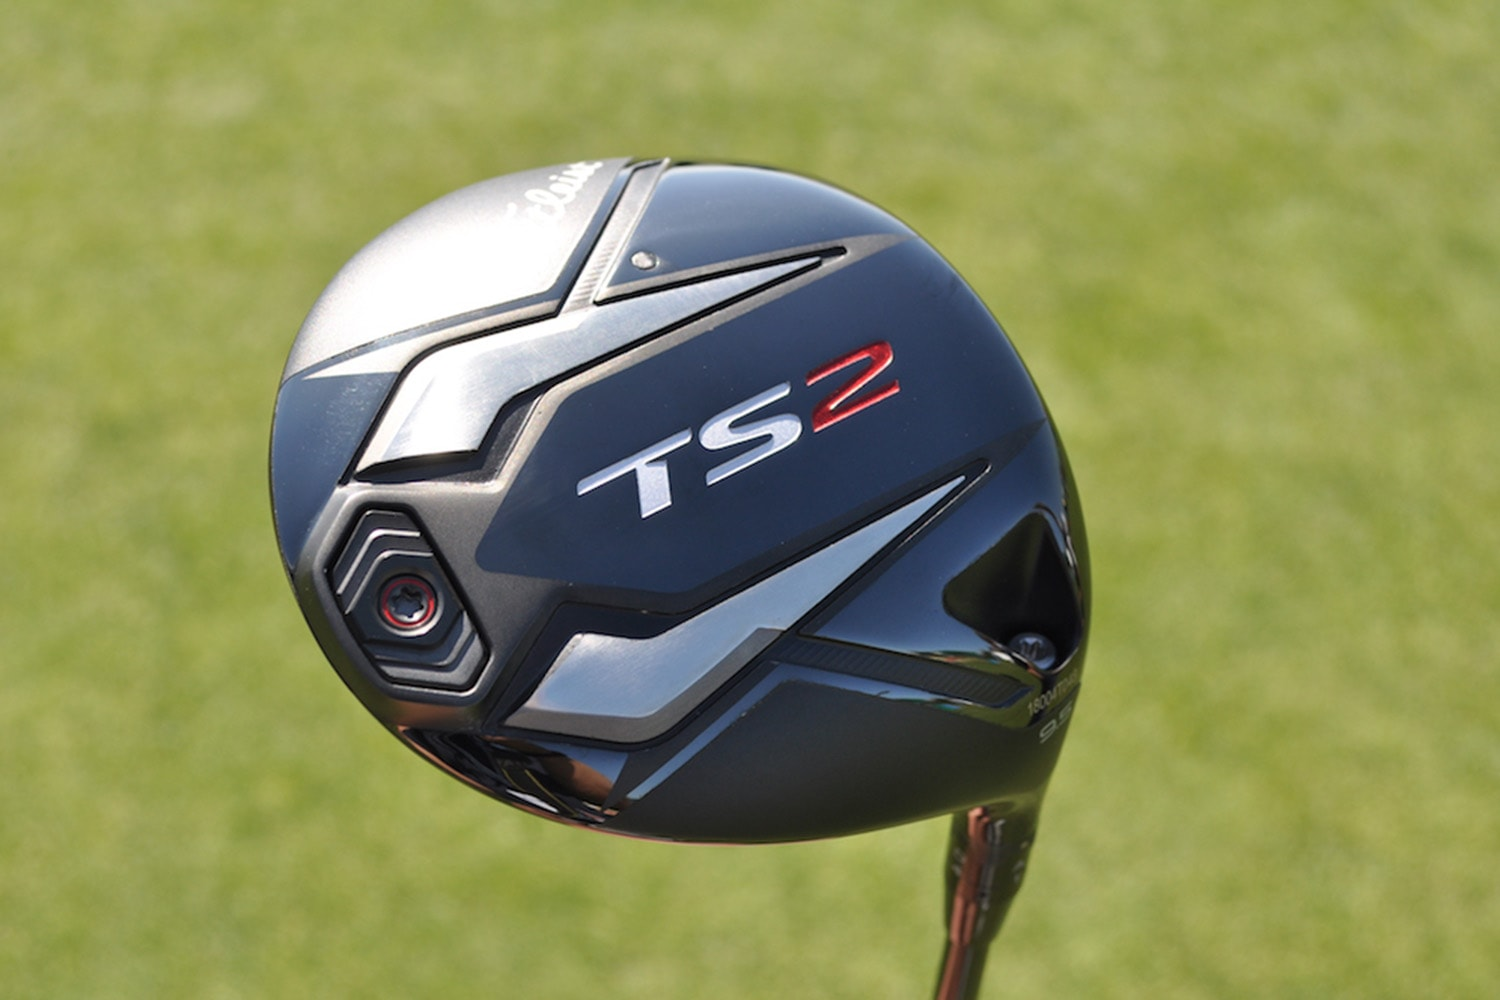 First look: Titleist's TS drivers and fairway woods